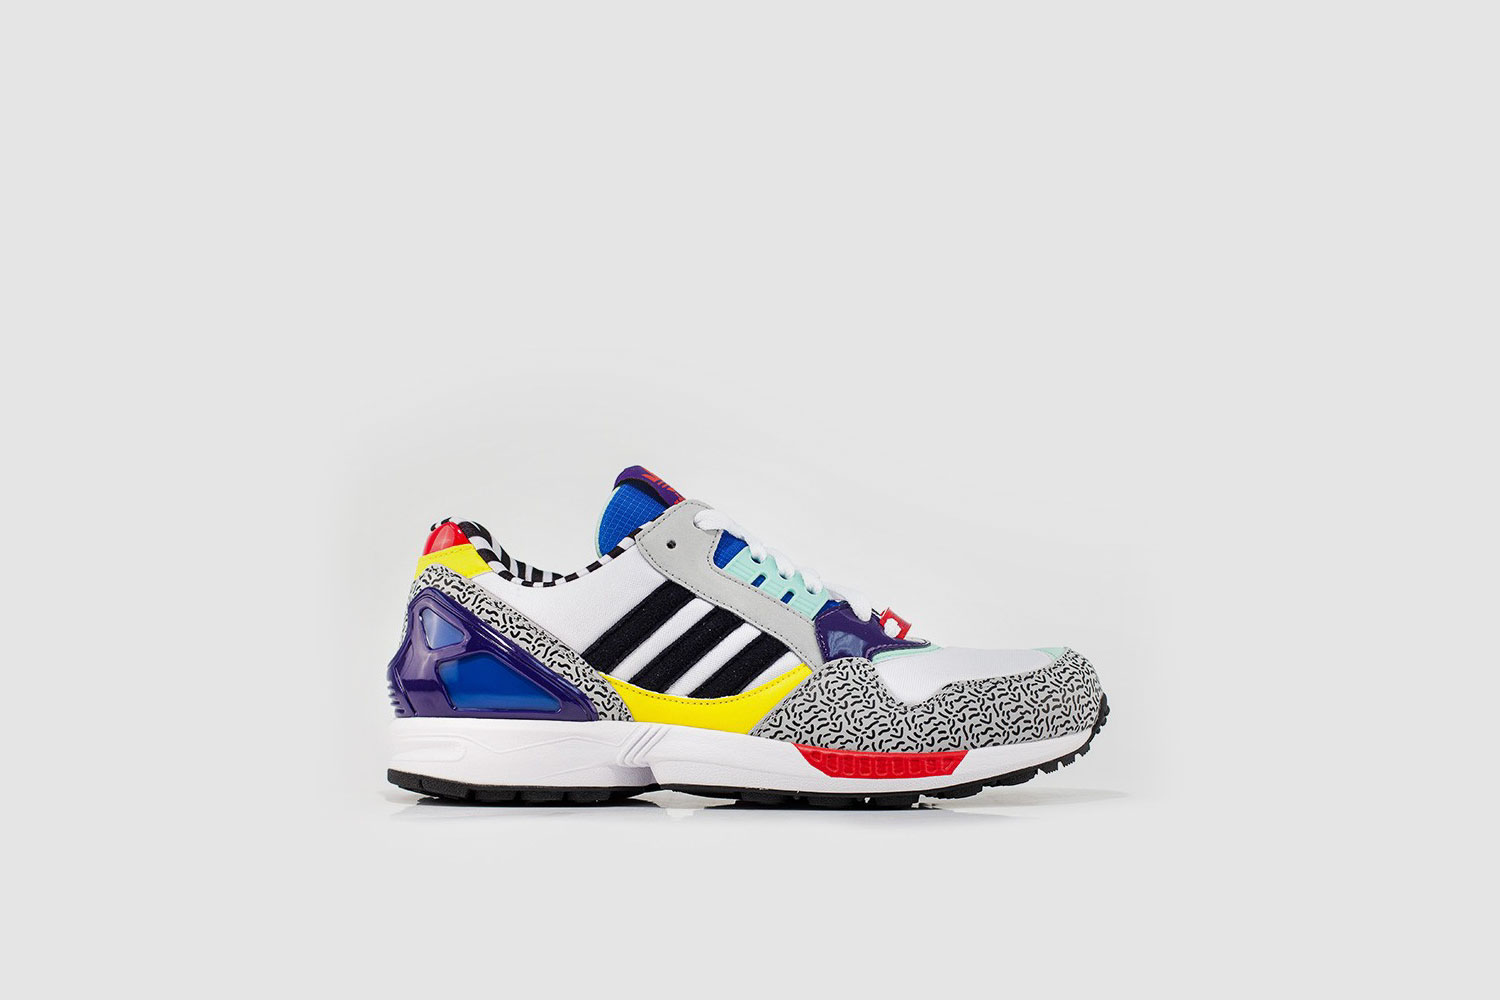 Memphis Group x Adidas ZX 9000 shoes